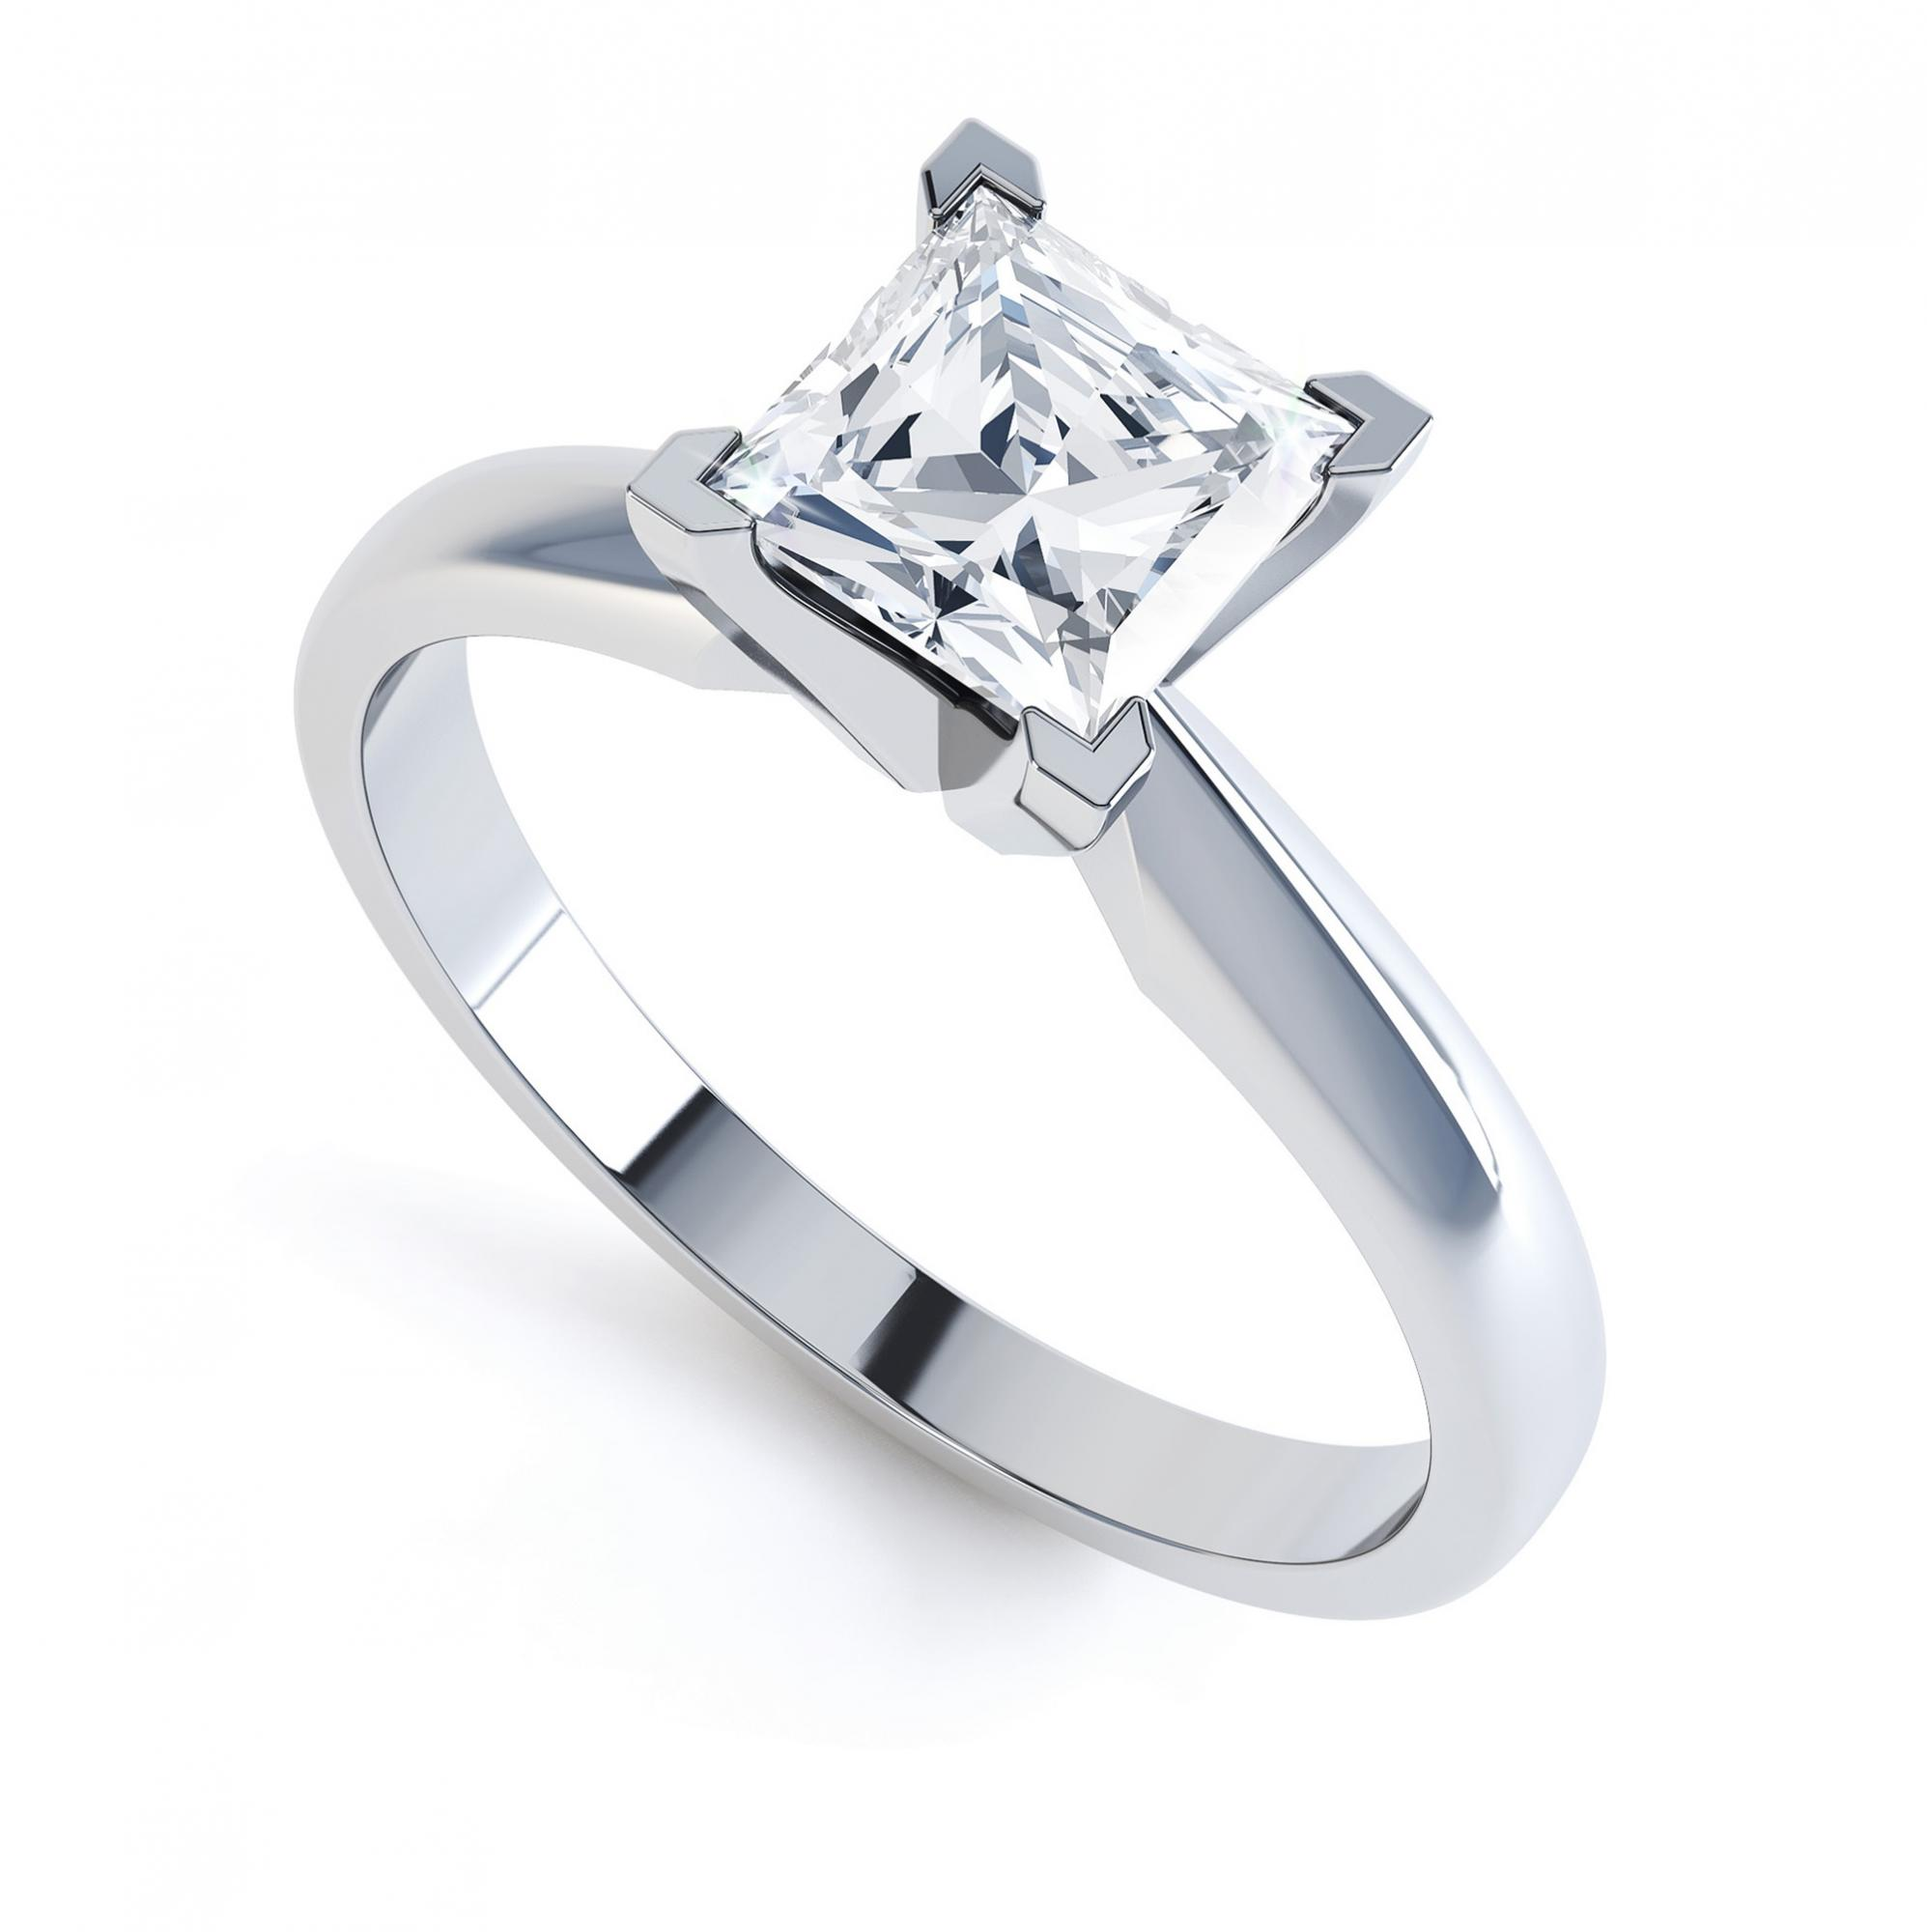 Aurora Princess Cut Solitaire Engagement Ring Perpective White Gold